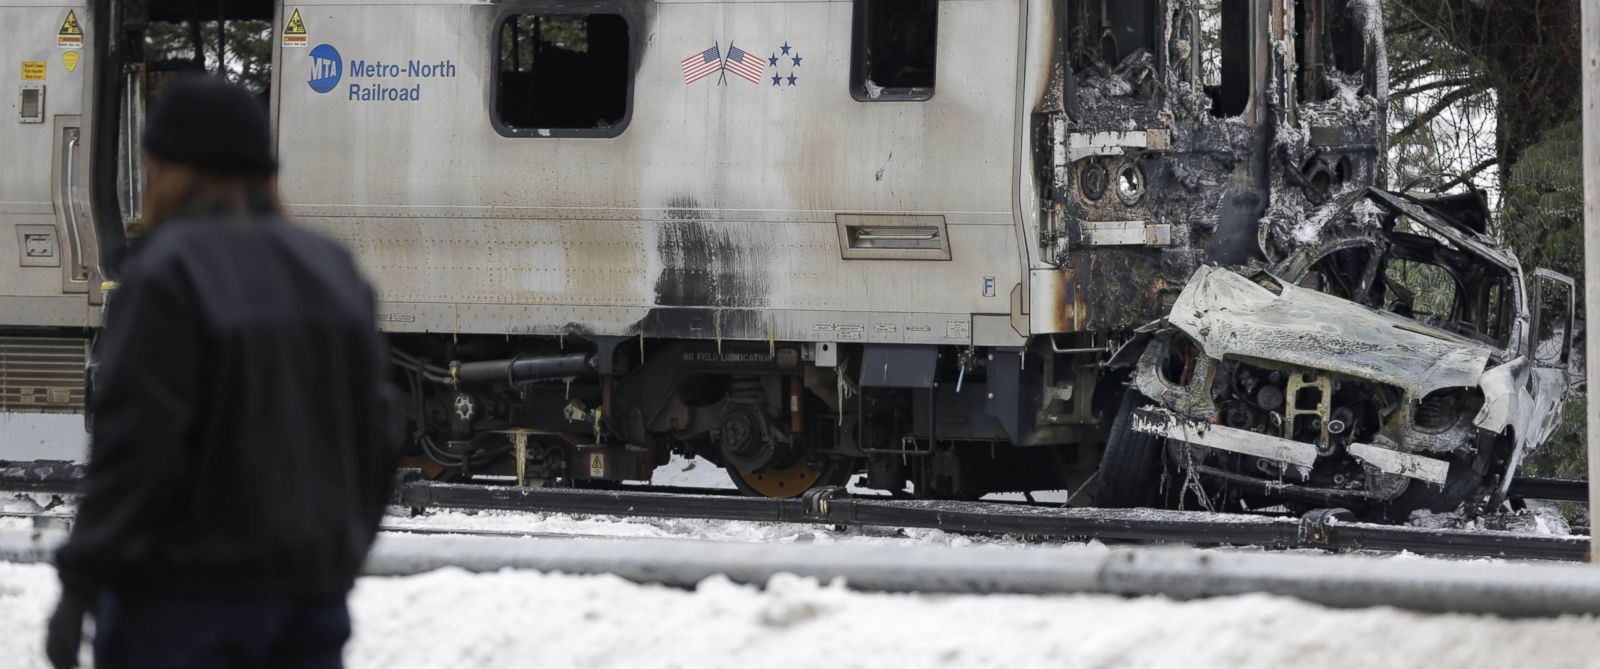 PHOTO: Emergency personnel stand near the site of a collision between a Metro-North Railroad train and a SUV in Valhalla, N.Y., Feb. 4, 2015.